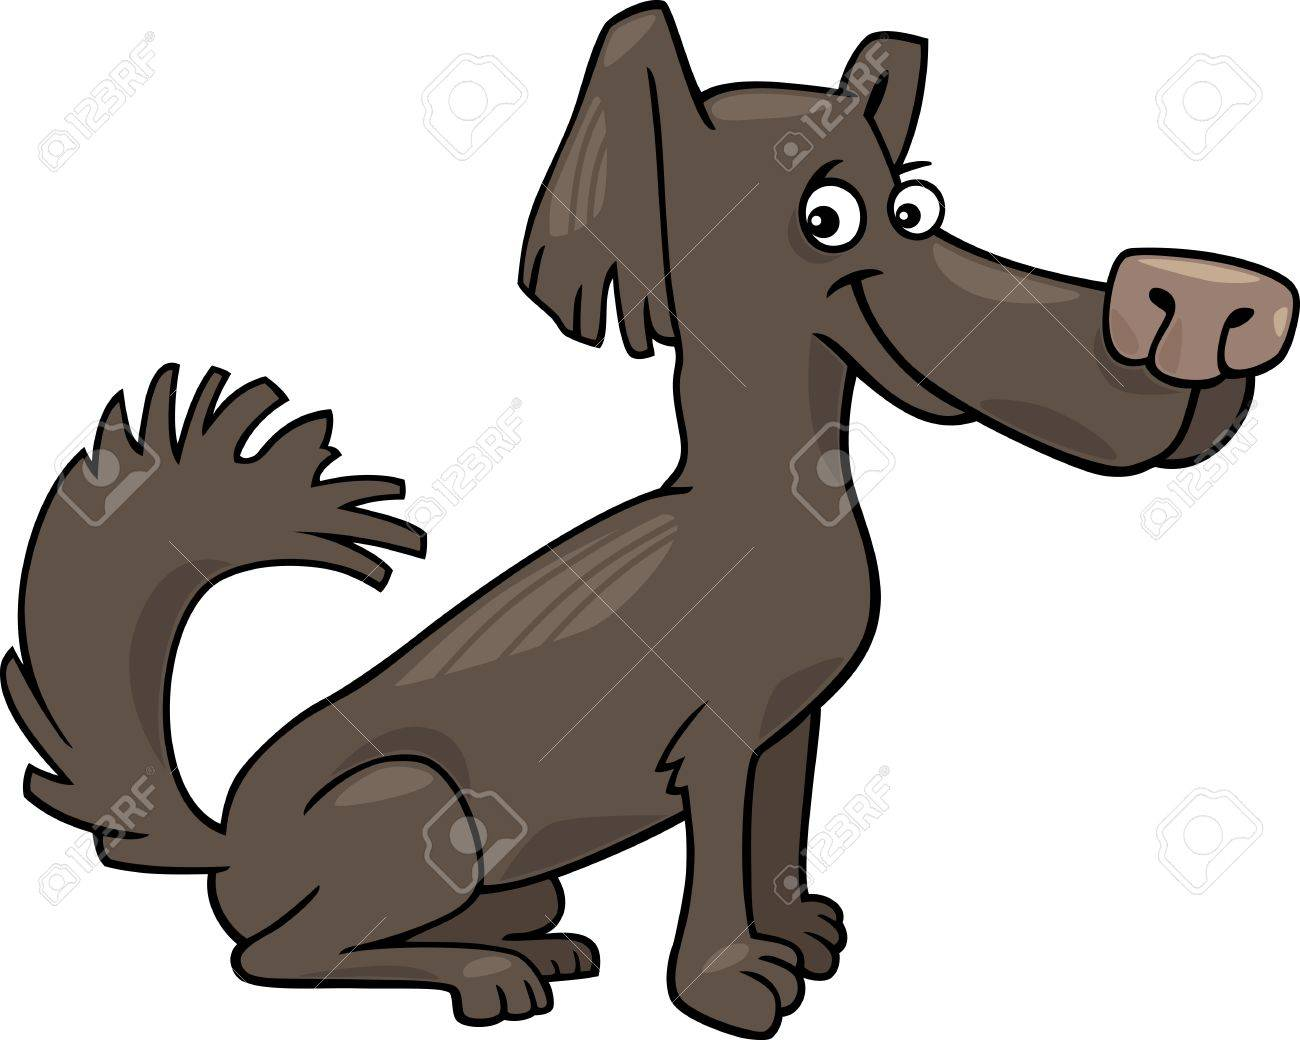 1300x1040 Cartoon Illustration Of Funny Little Shaggy Dark Brown Dog Royalty